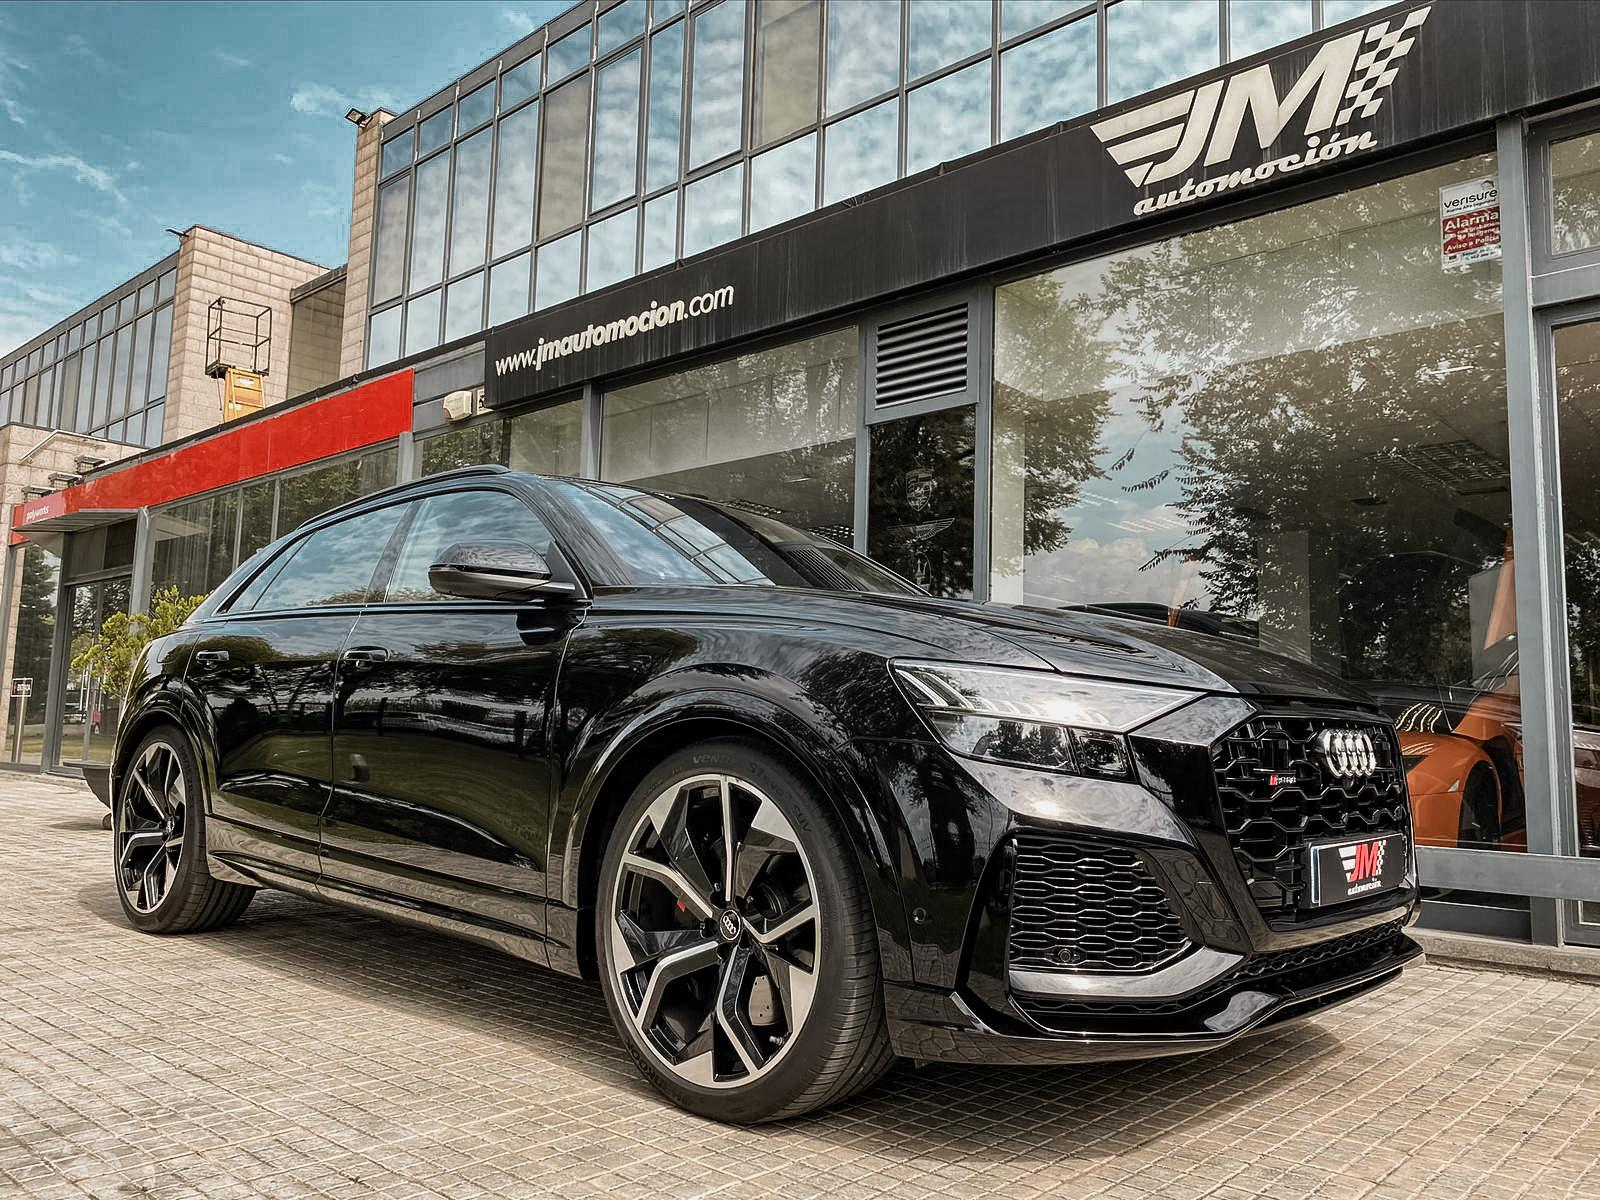 AUDI RSQ8 TFSI QUATTRO --FULL OPTIONS, IVA DEDUCIBLE--